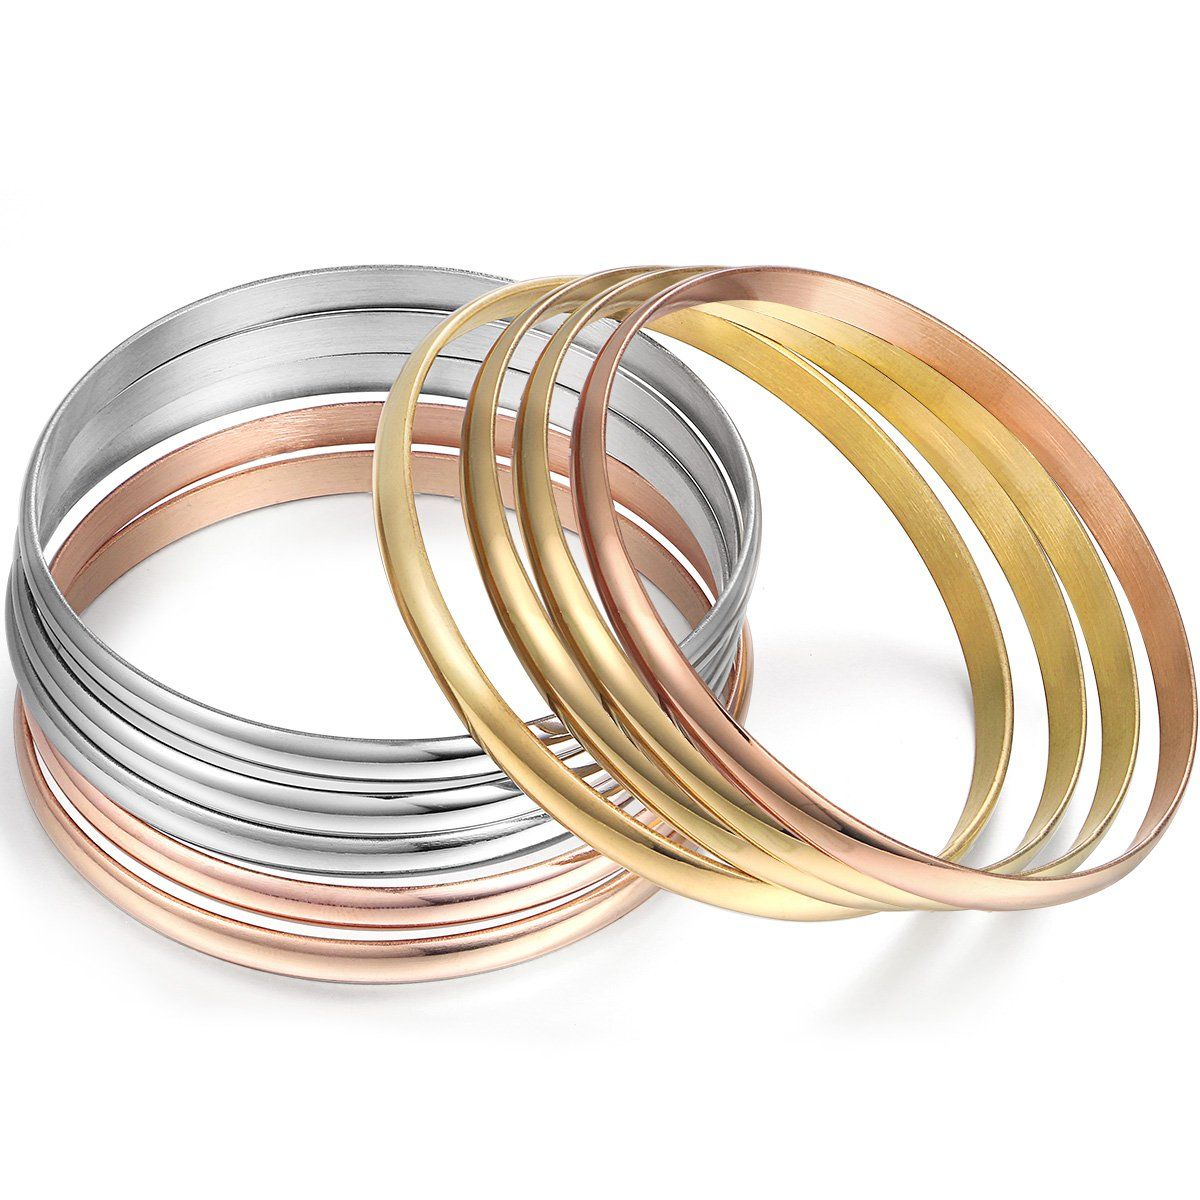 Multistrand pcs tricolor silver gold rose gold stainless steel